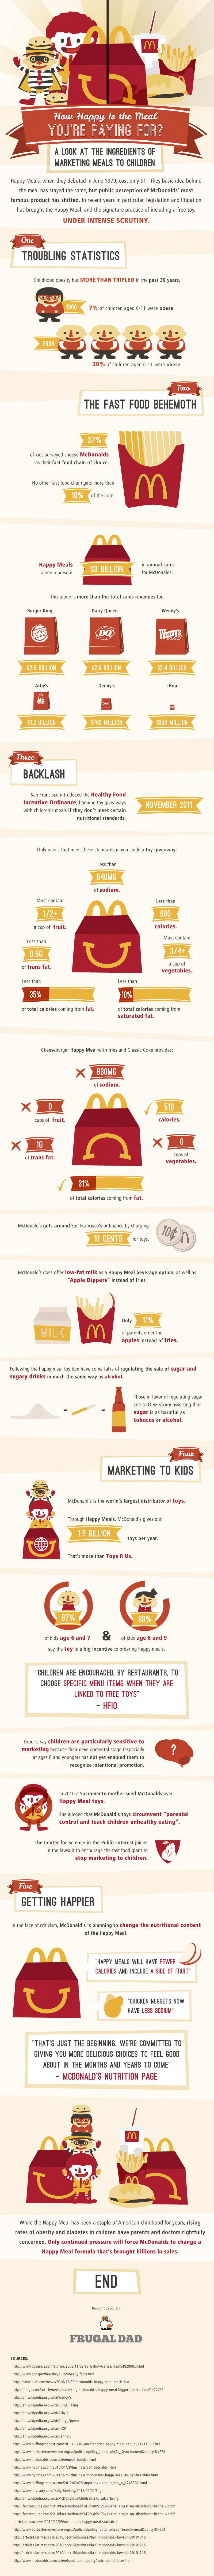 How happy is the meal you are paying for #Infographic